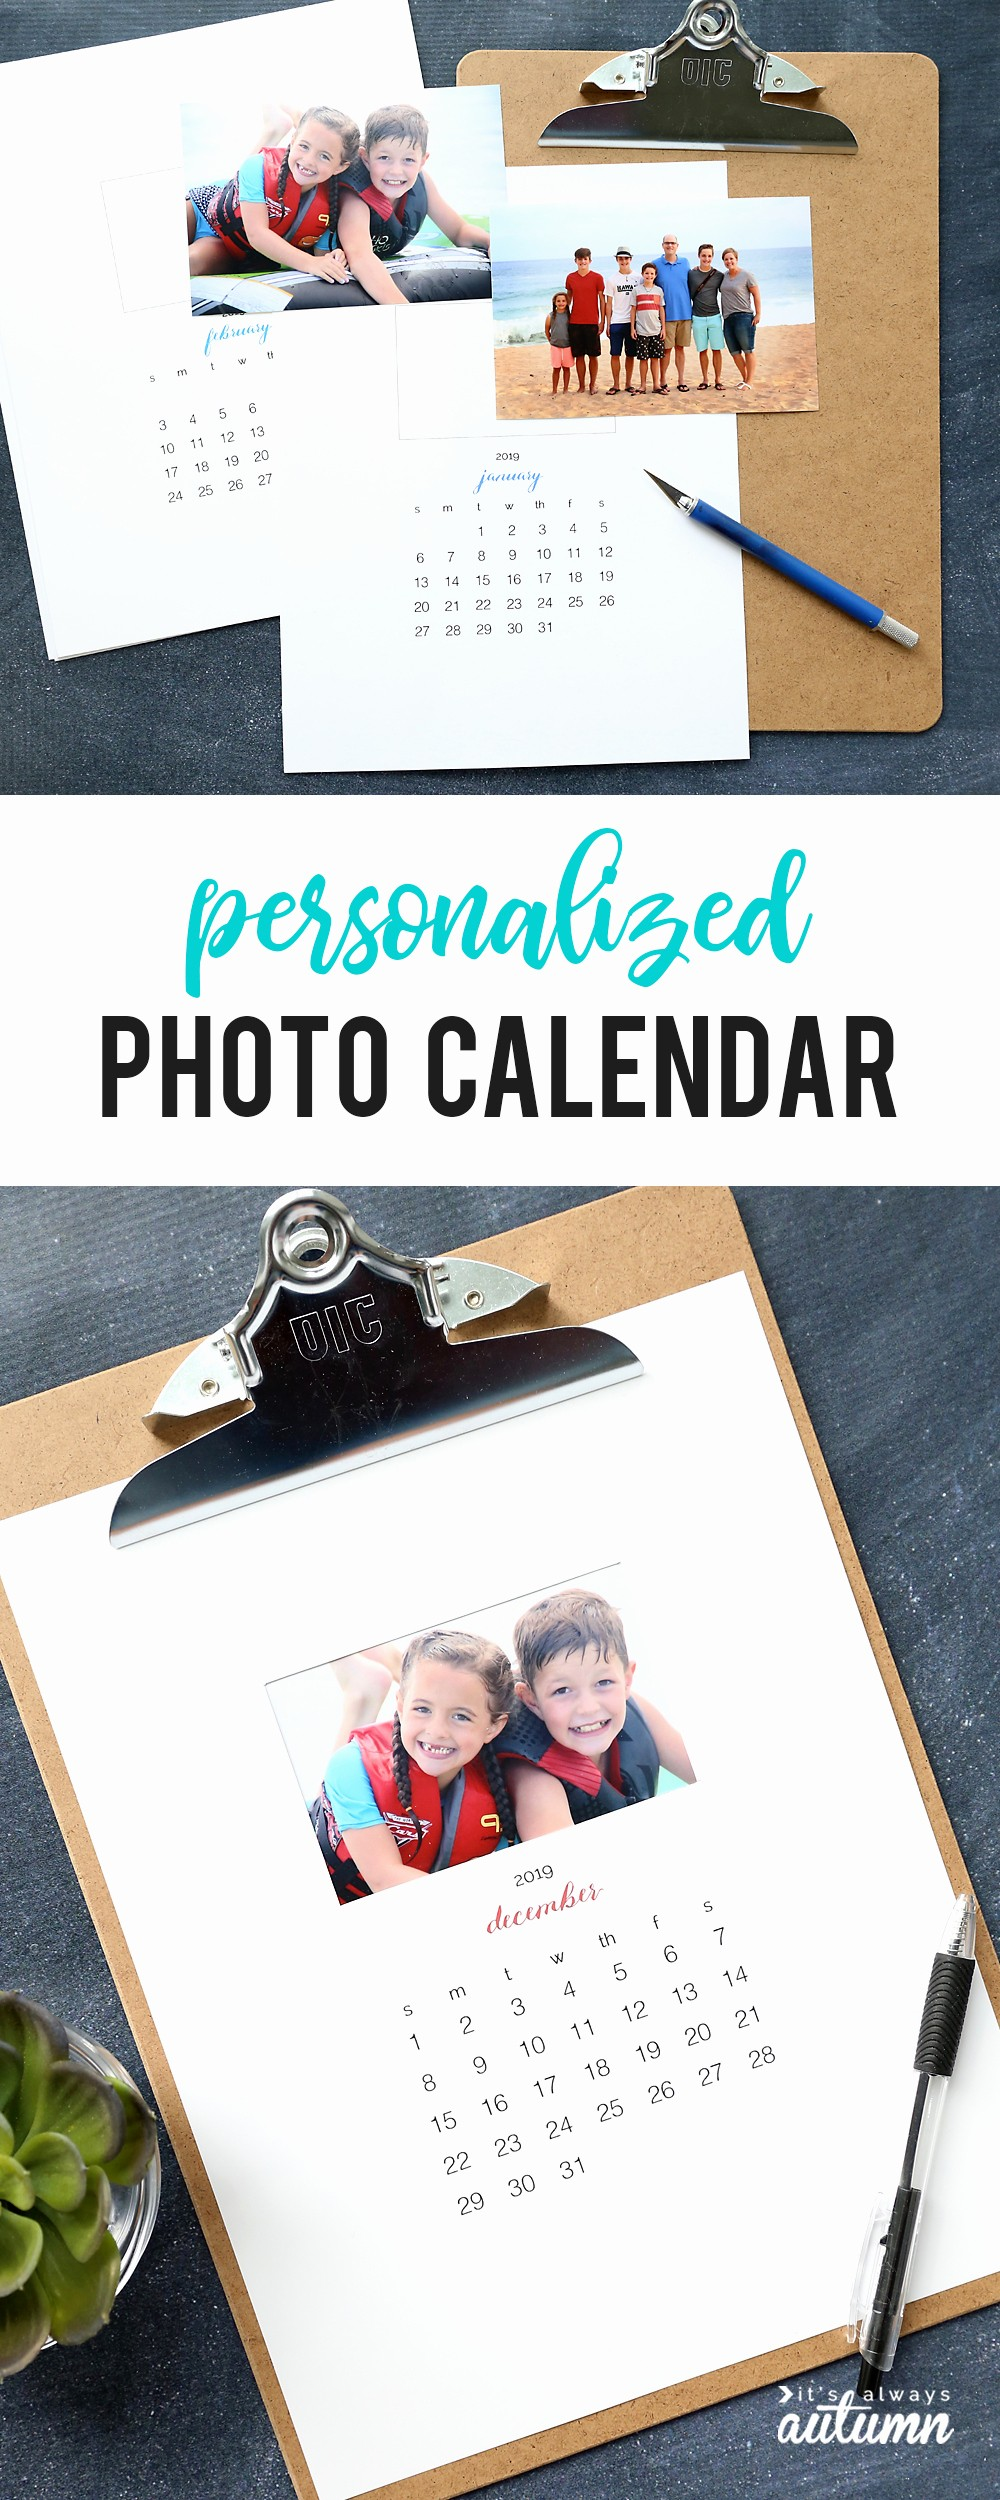 Make A Photo Calendar Free Lovely Make Your Own Personalized Calendar Free Printable 2019